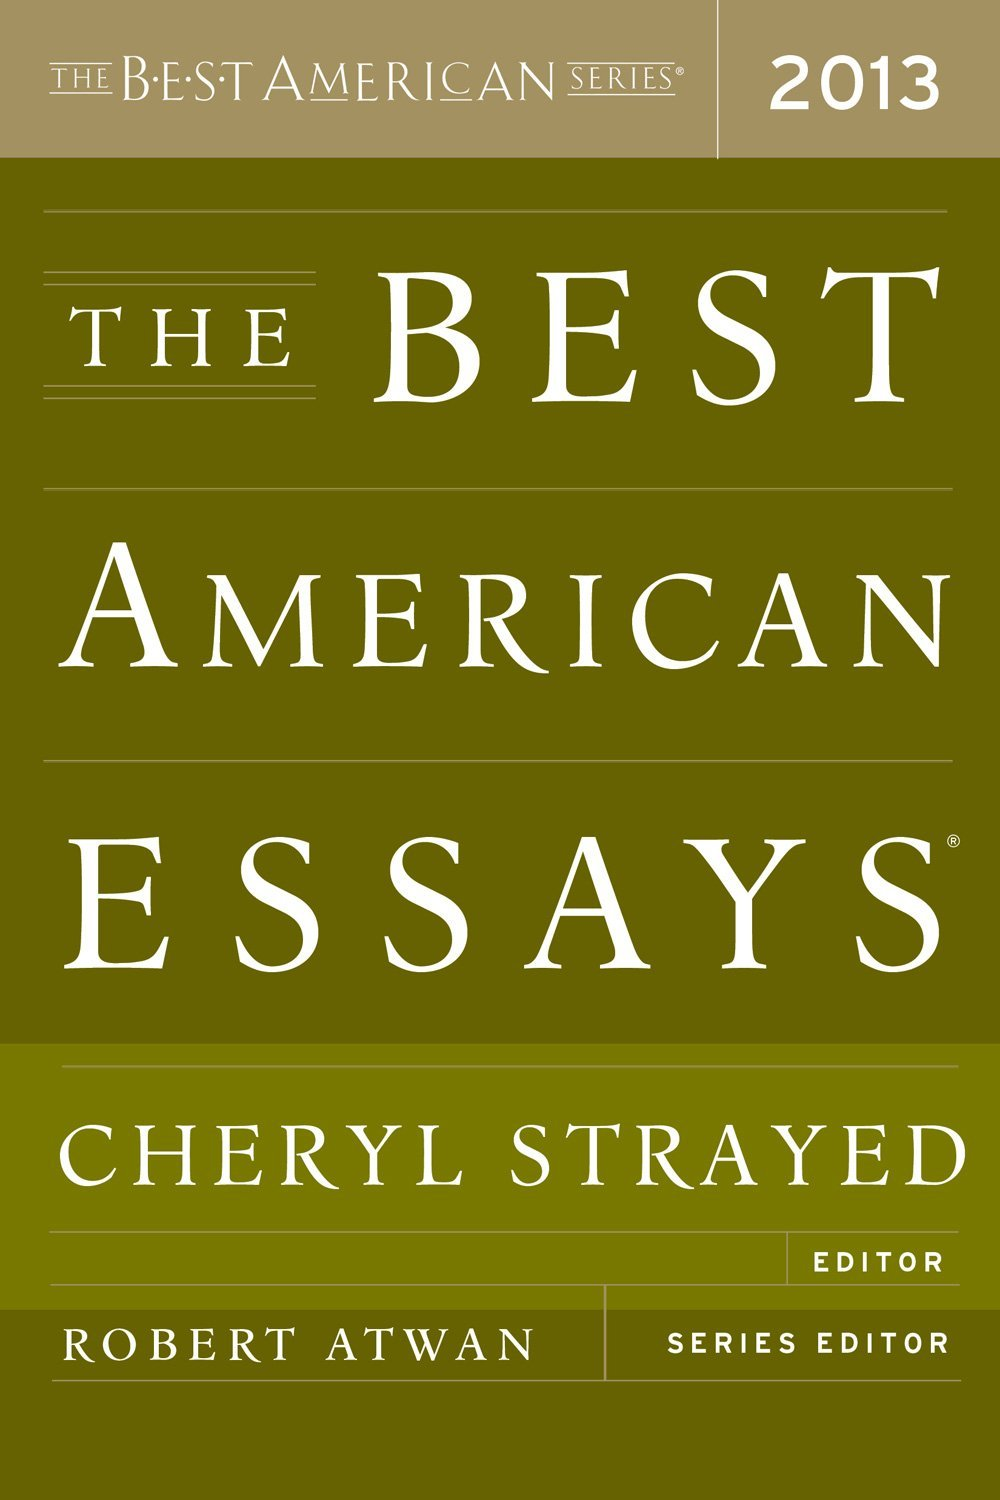 review the best american essays columbia journal vanessa veselka zadie smith john jeremiah sullivan alice munro an essay collection that includes these writers edited by cheryl strayed